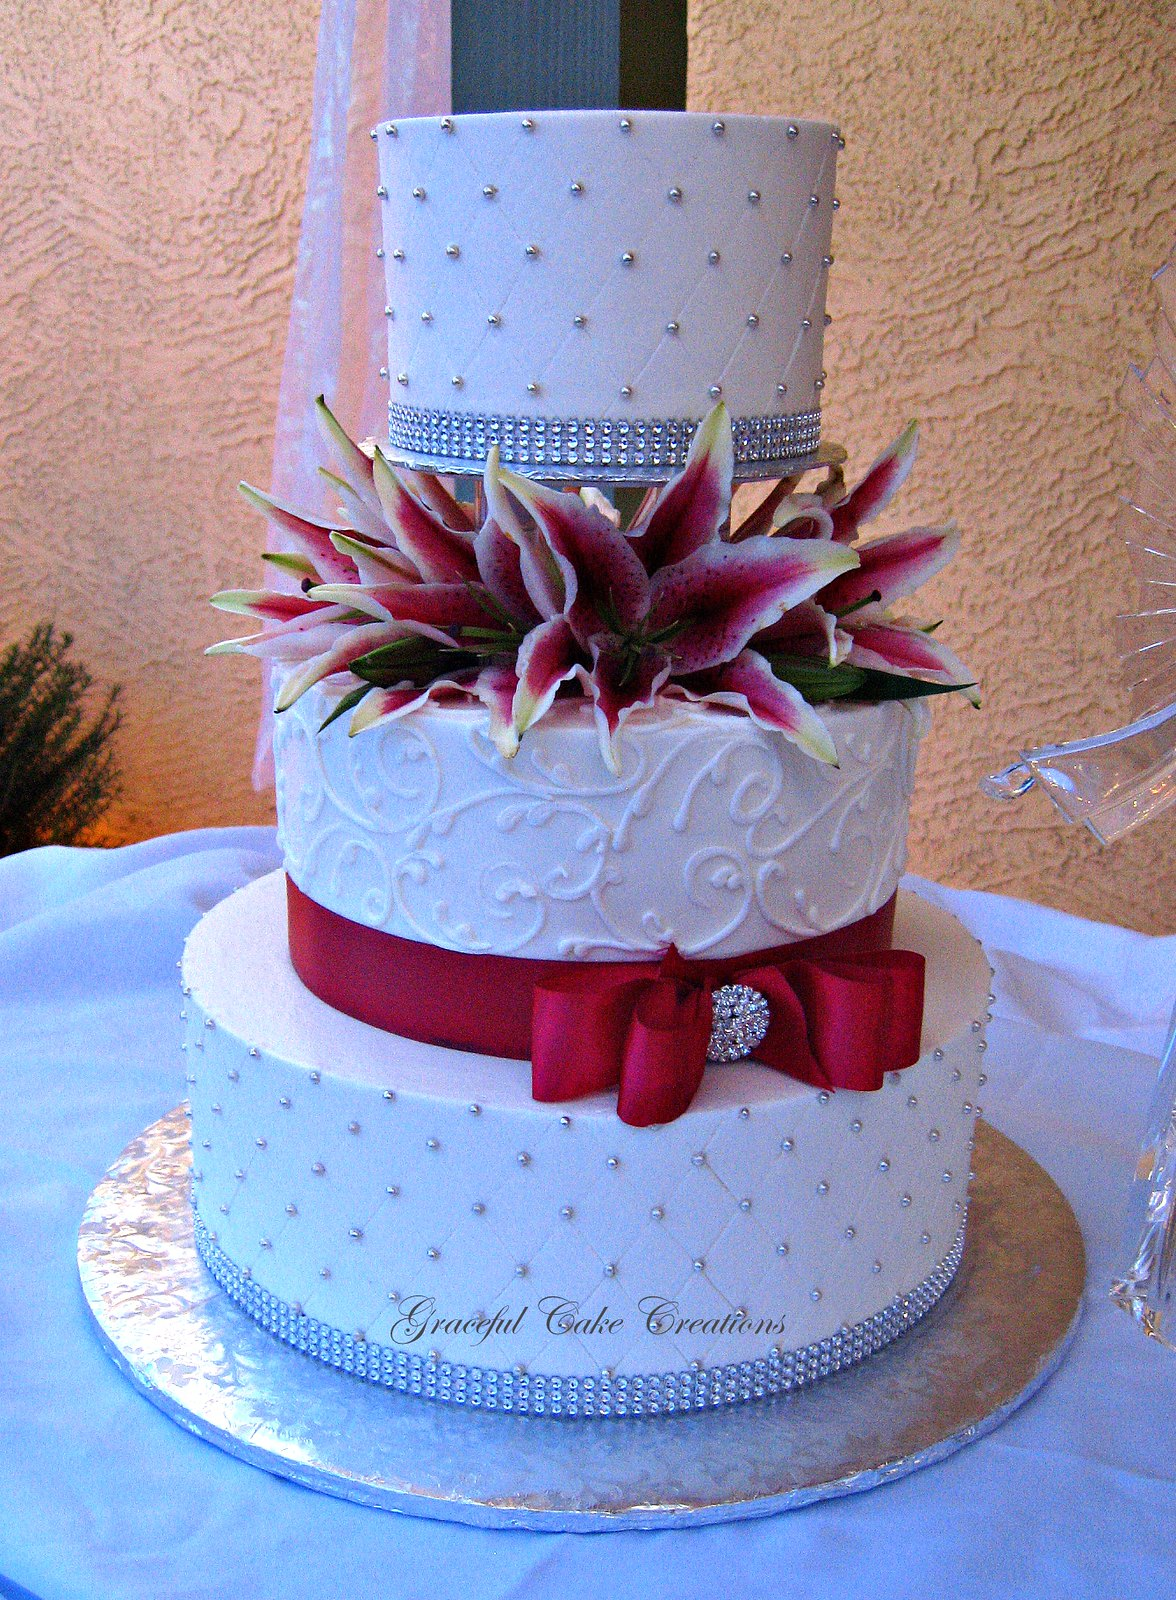 Elegant White Buttercream Wedding Cake with Silver and Red